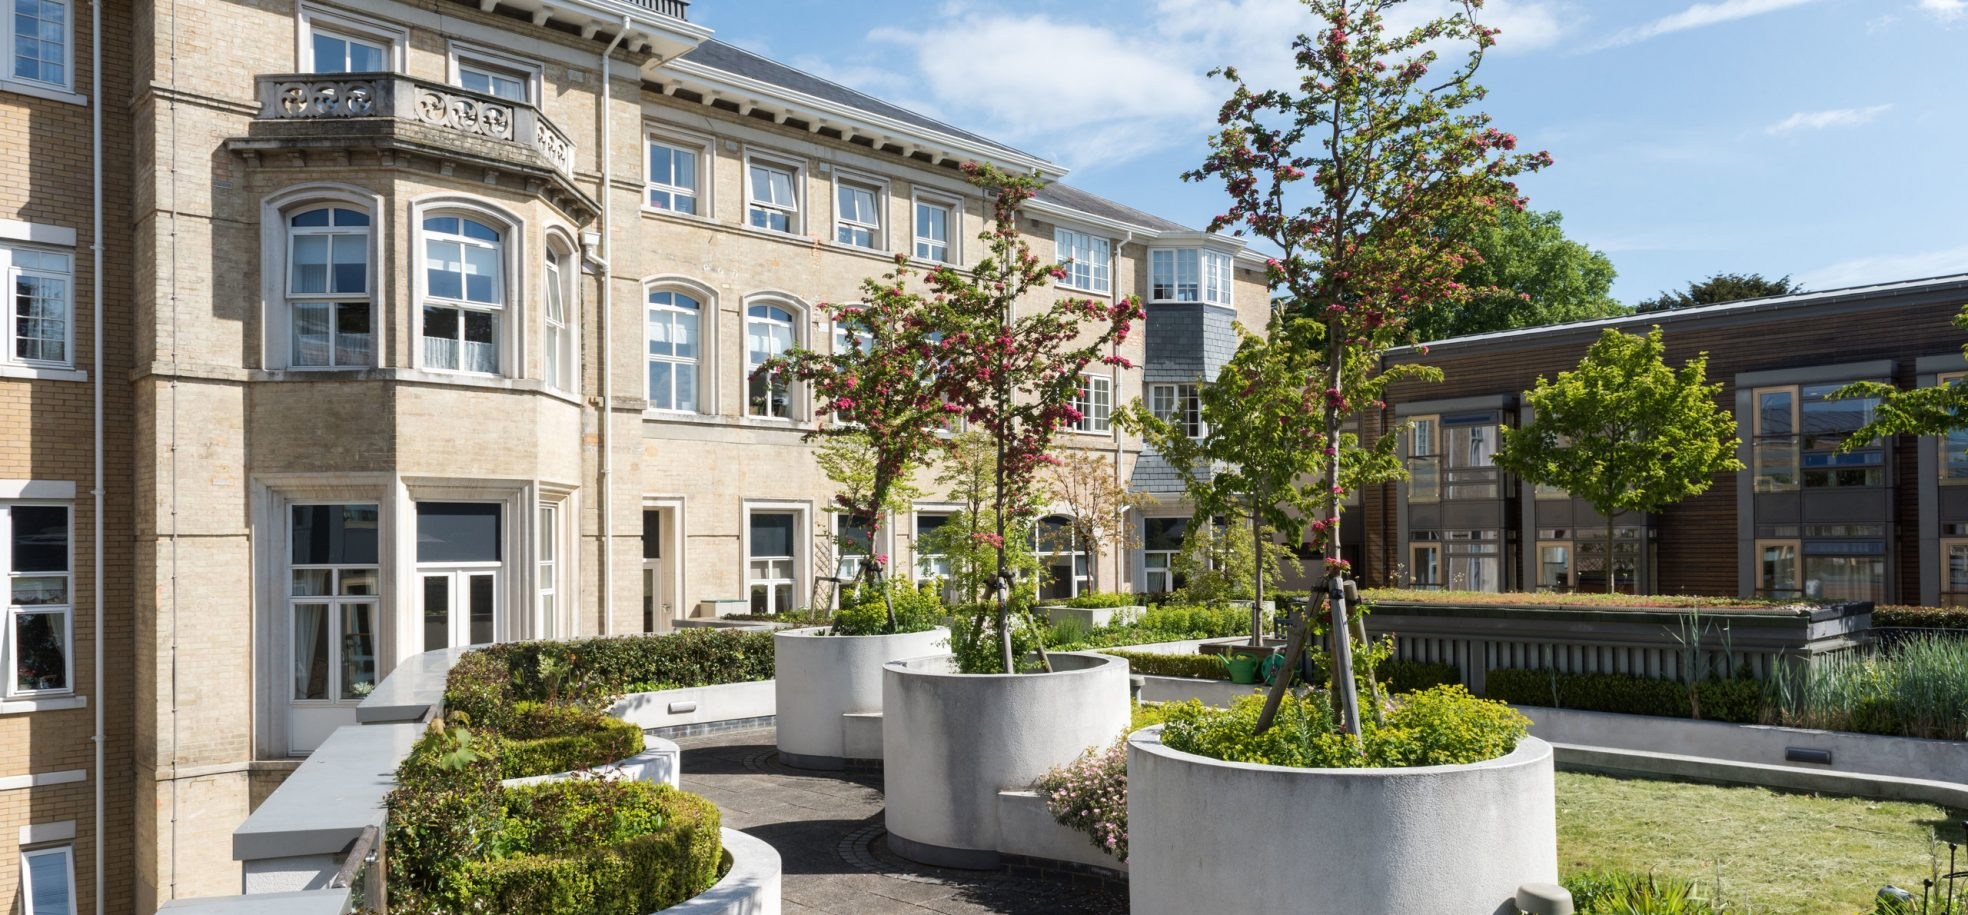 Front building and gardens at James Terry Court